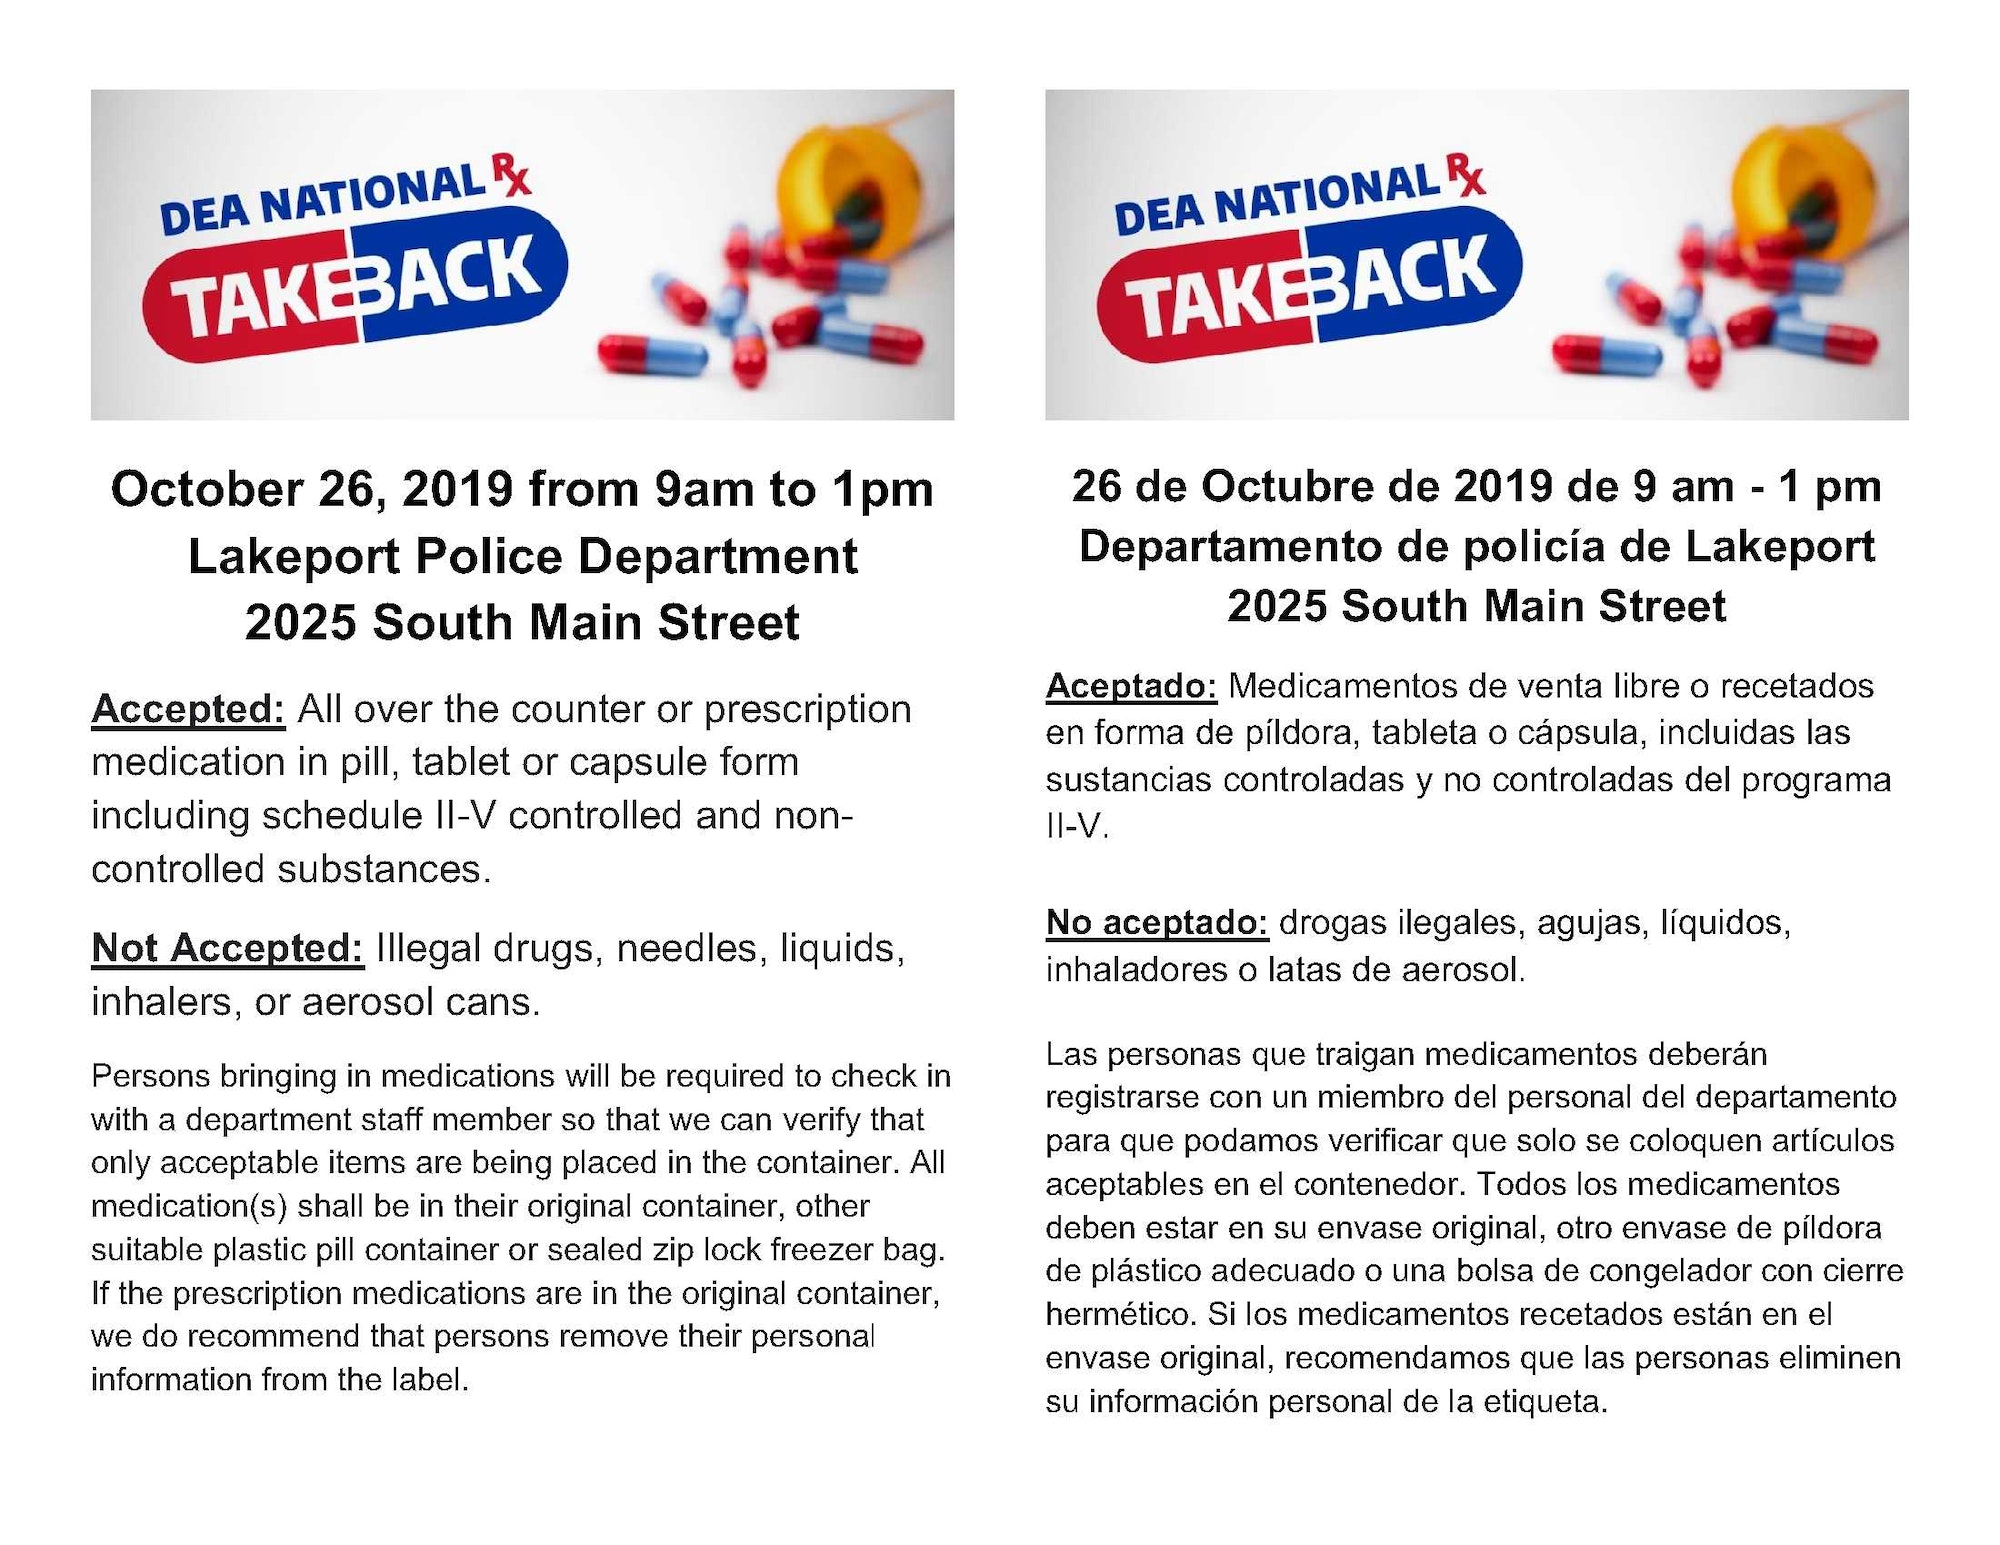 National Drug Take-Back Day